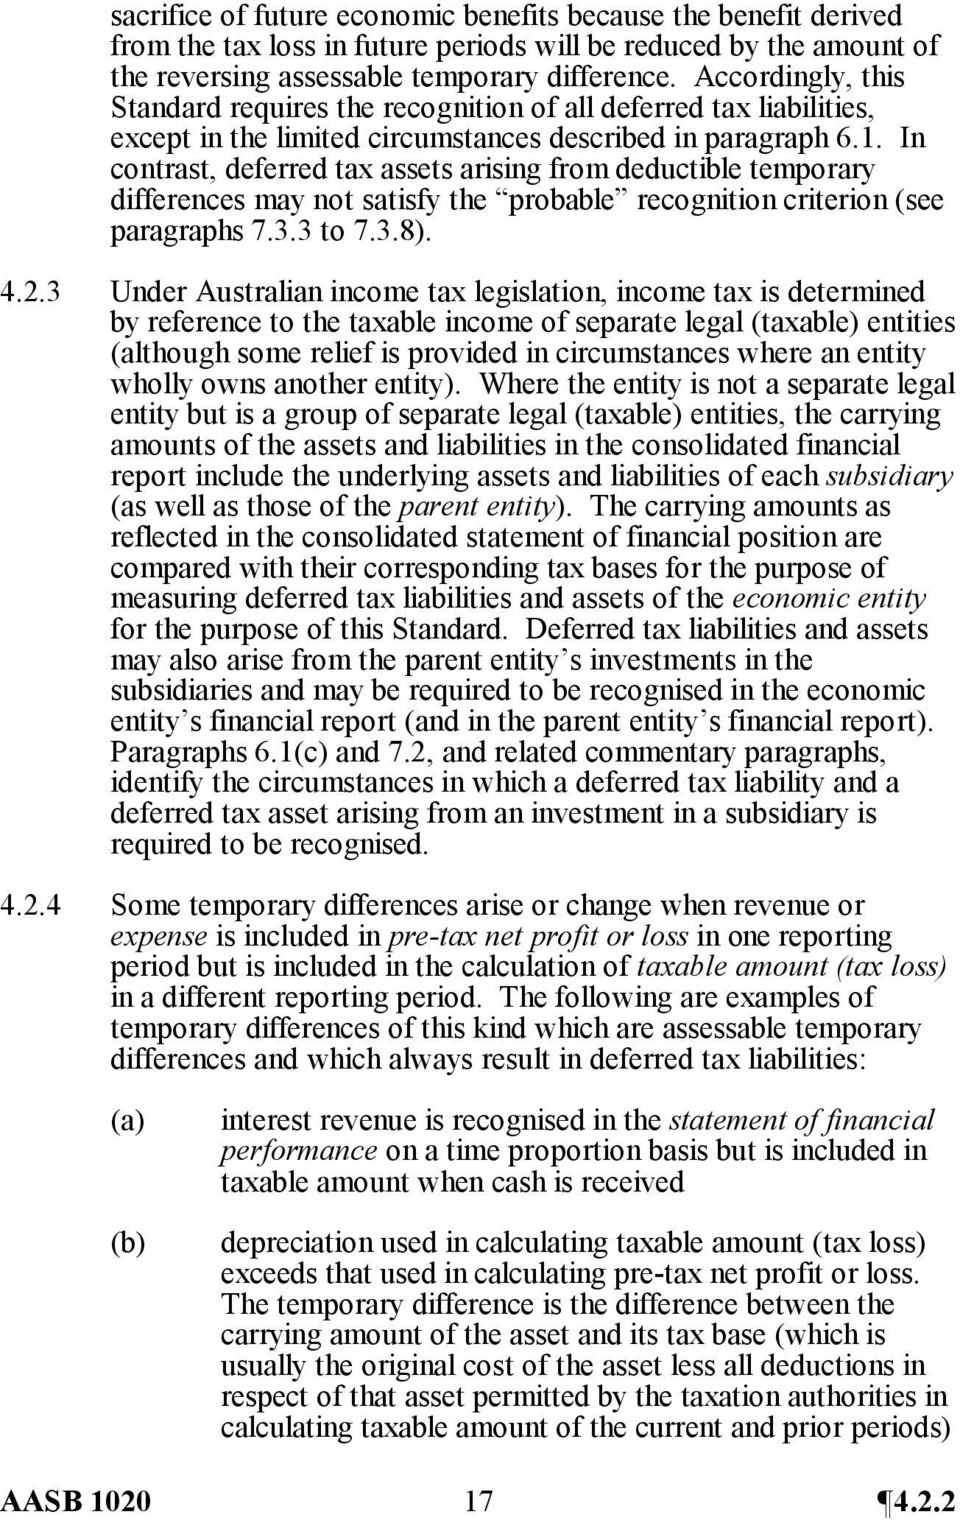 In contrast, deferred tax assets arising from deductible temporary differences may not satisfy the probable recognition criterion (see paragraphs 7.3.3 to 7.3.8). 4.2.